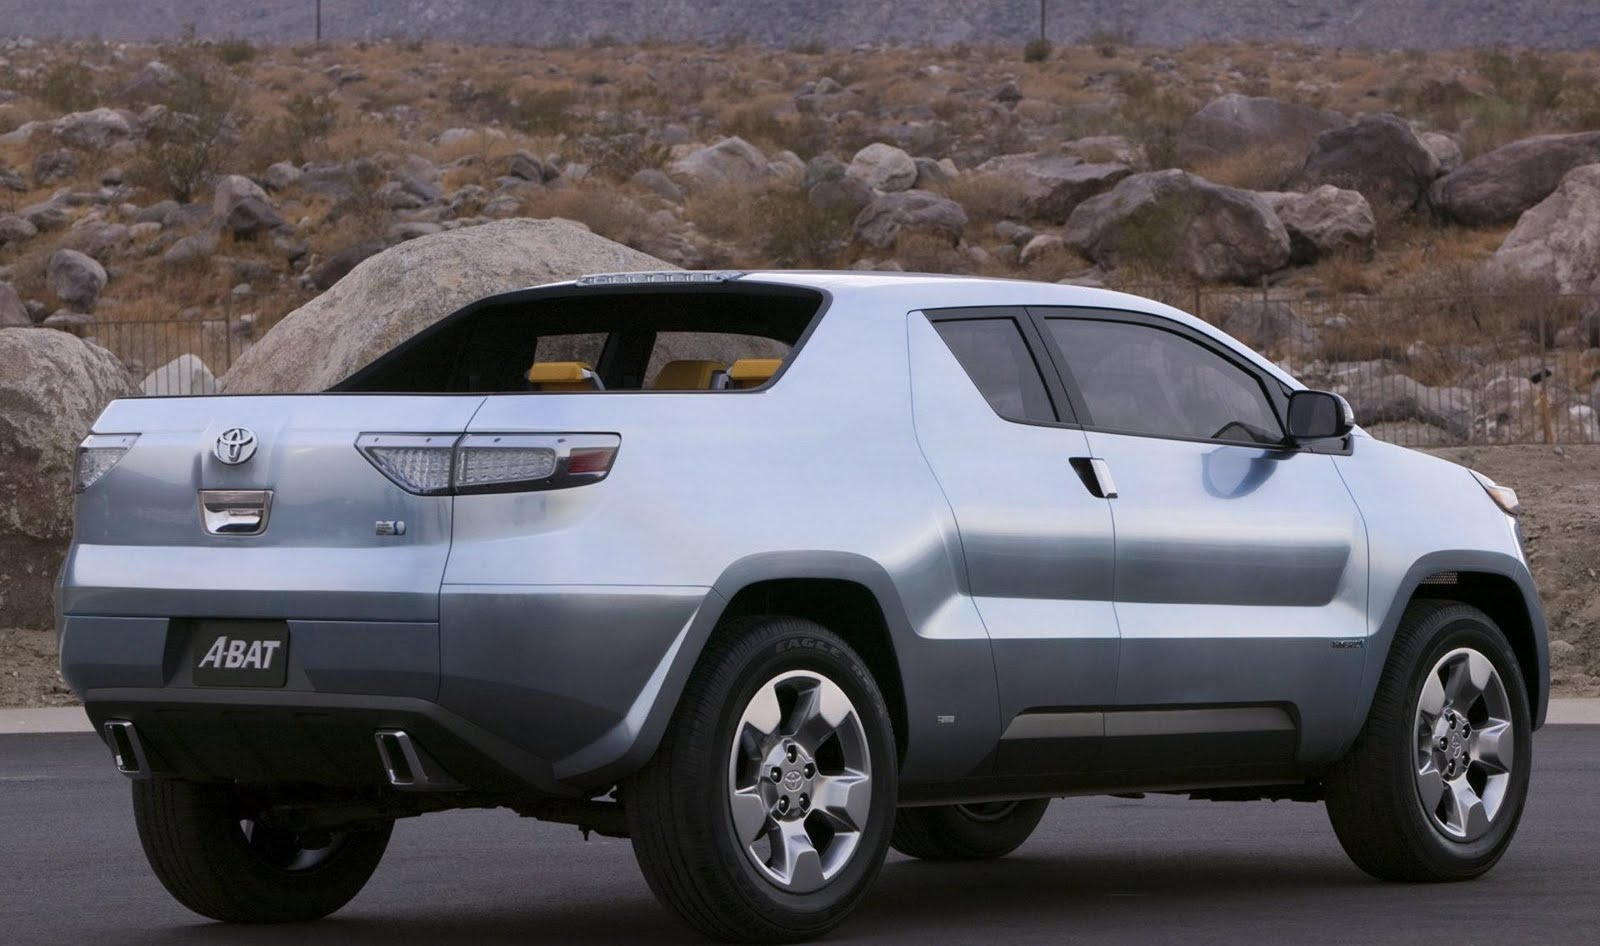 like the Honda Ridgeline, Nissan Frontier, and Toyota Tacoma